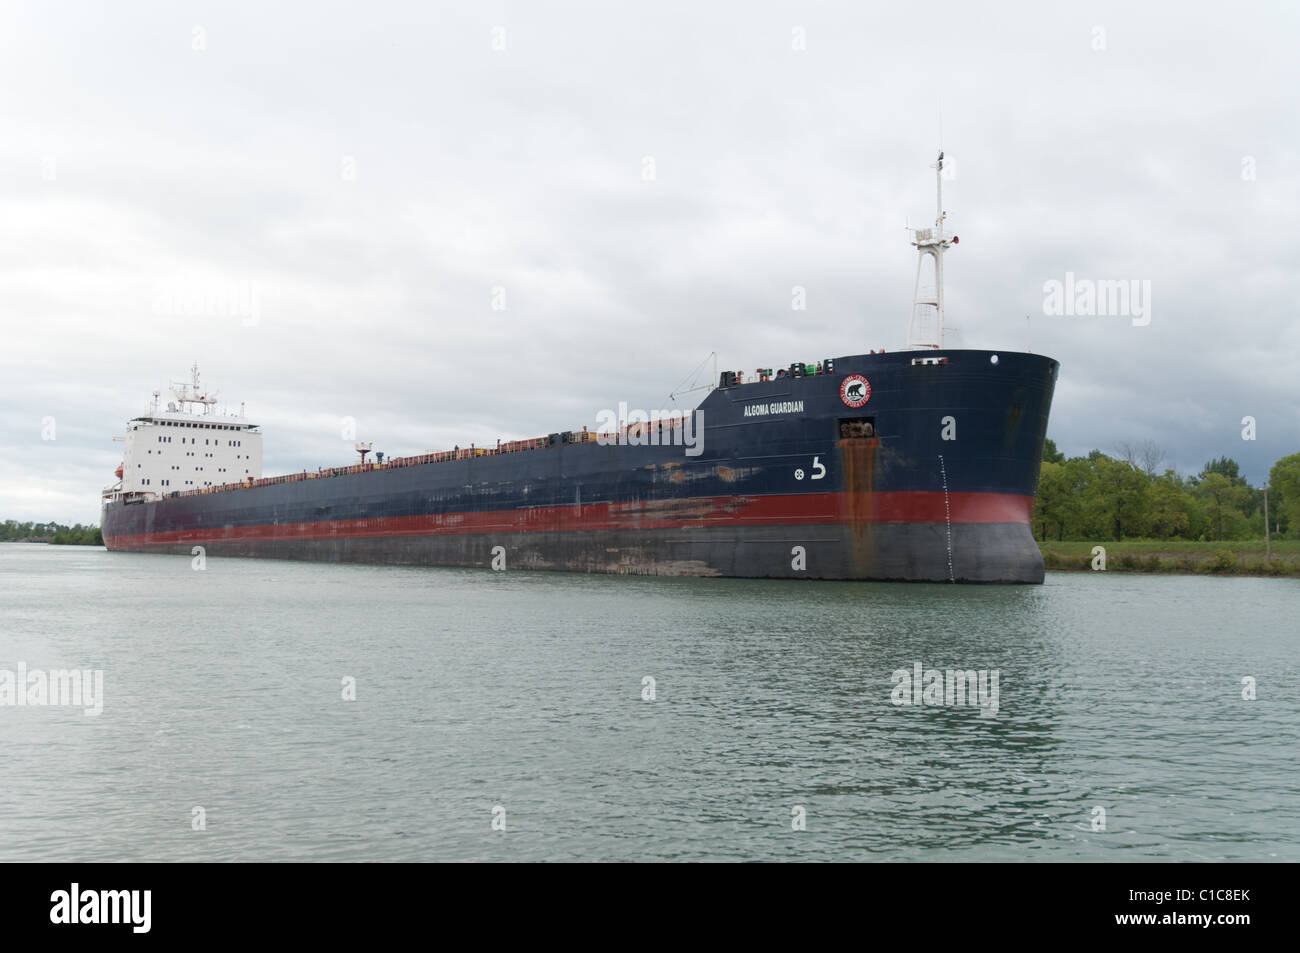 Bulk carrier 'Algoma Guardian' as seen navigating the Welland Canal, part of the St. Lawrence Seaway. - Stock Image